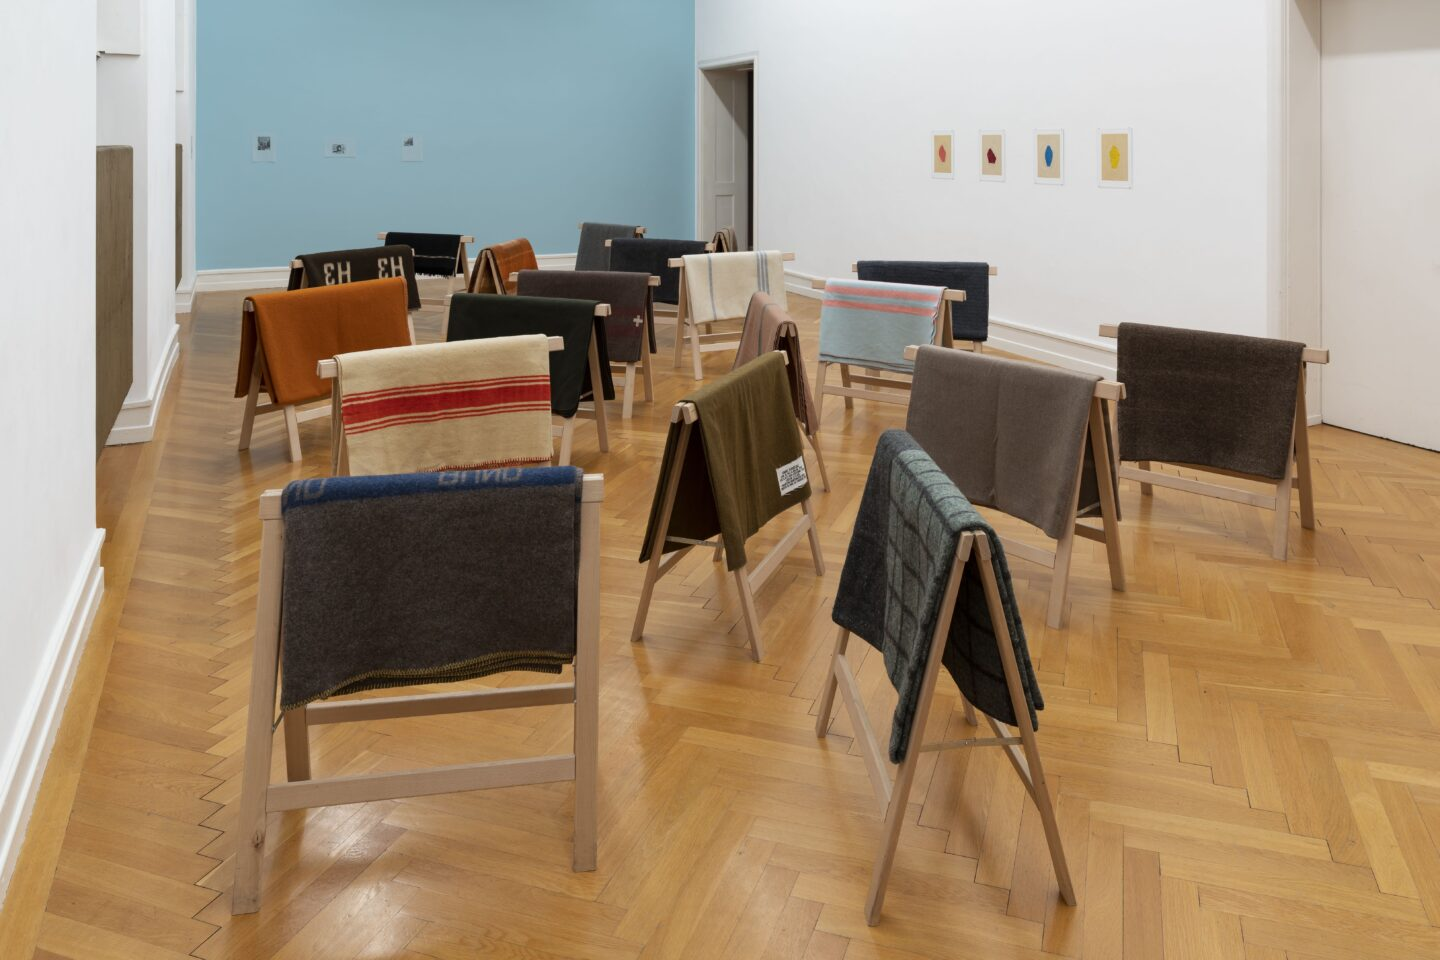 Exhibition View Marc Camille Chaimowicz Soloshow «Dear Valérie…; view on Andréa Sparta, Couvertures, 2019» at Kunsthalle Bern, Bern, 2020 / Photo: Gunnar Meier / Courtesy: the artist and Kunsthalle Bern